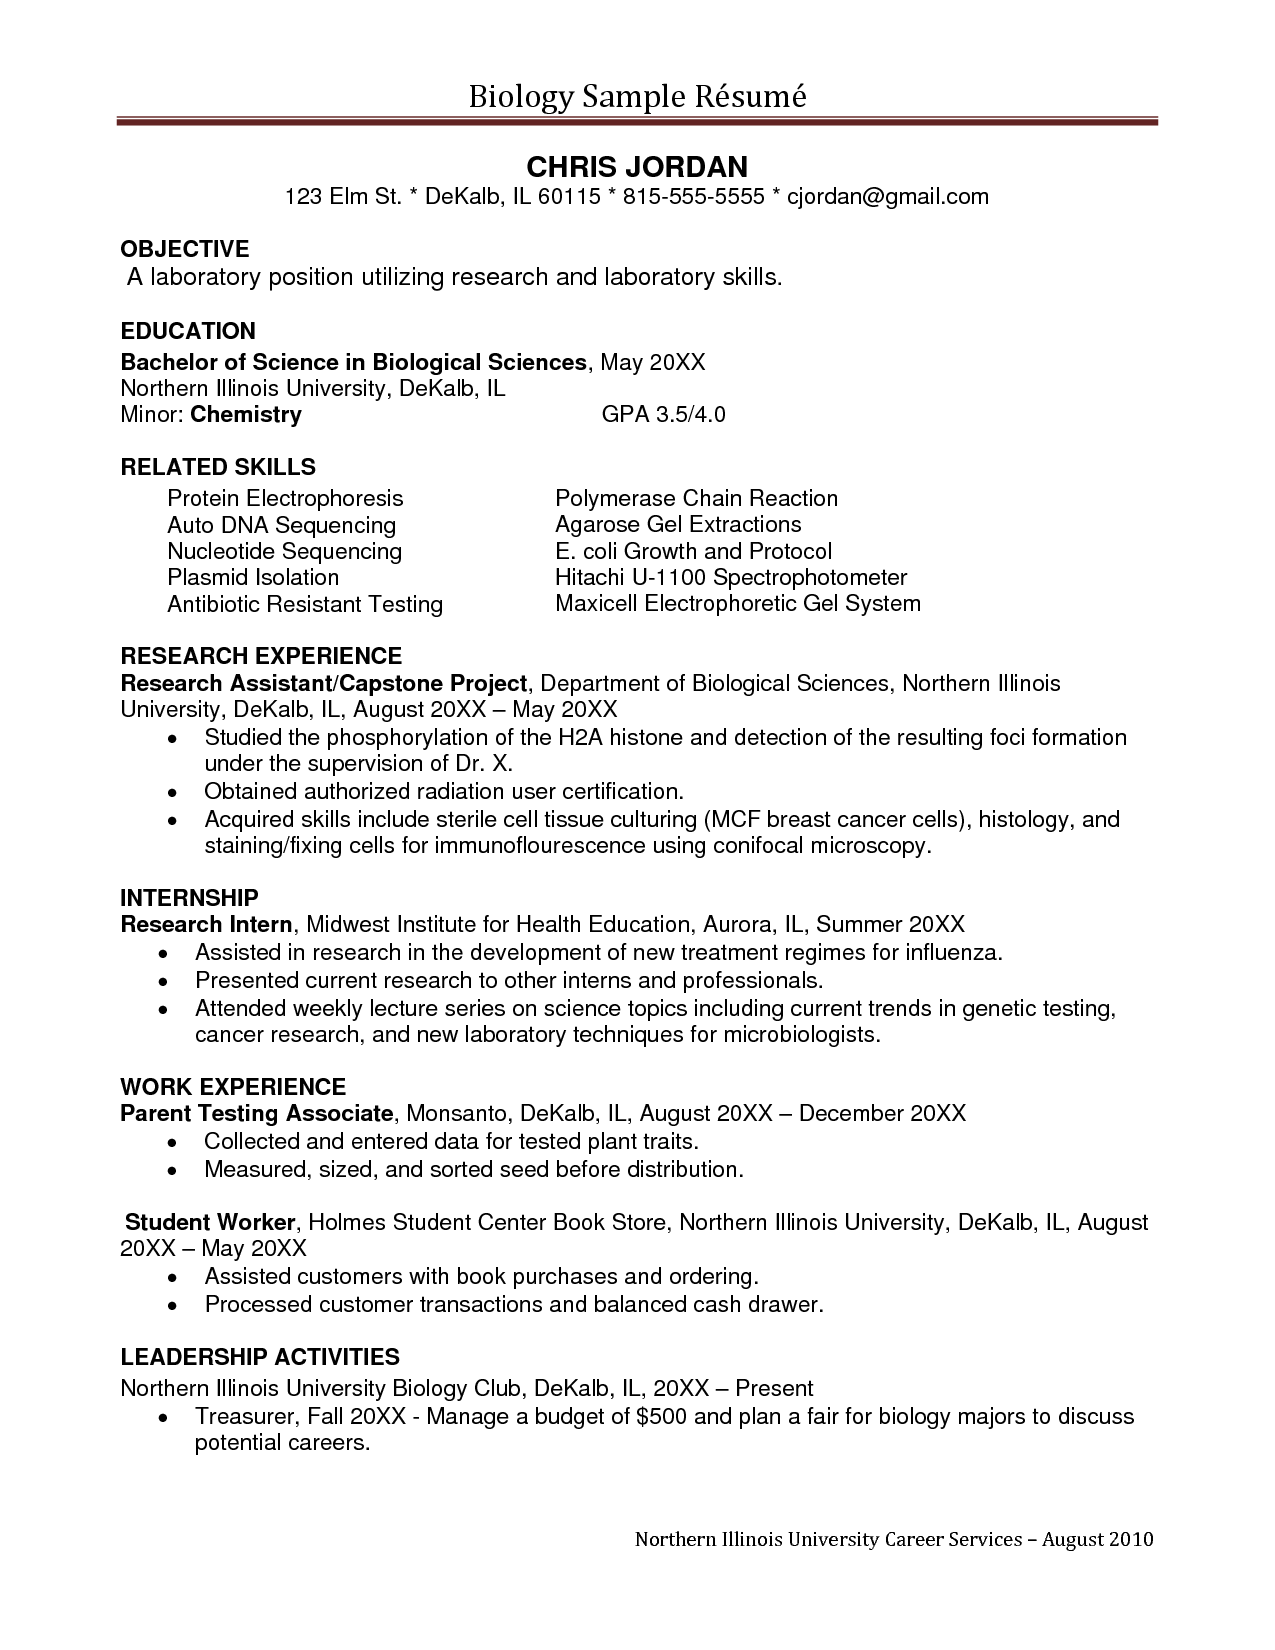 Research Assistant Resume Sample Objective Research Assistant Resume